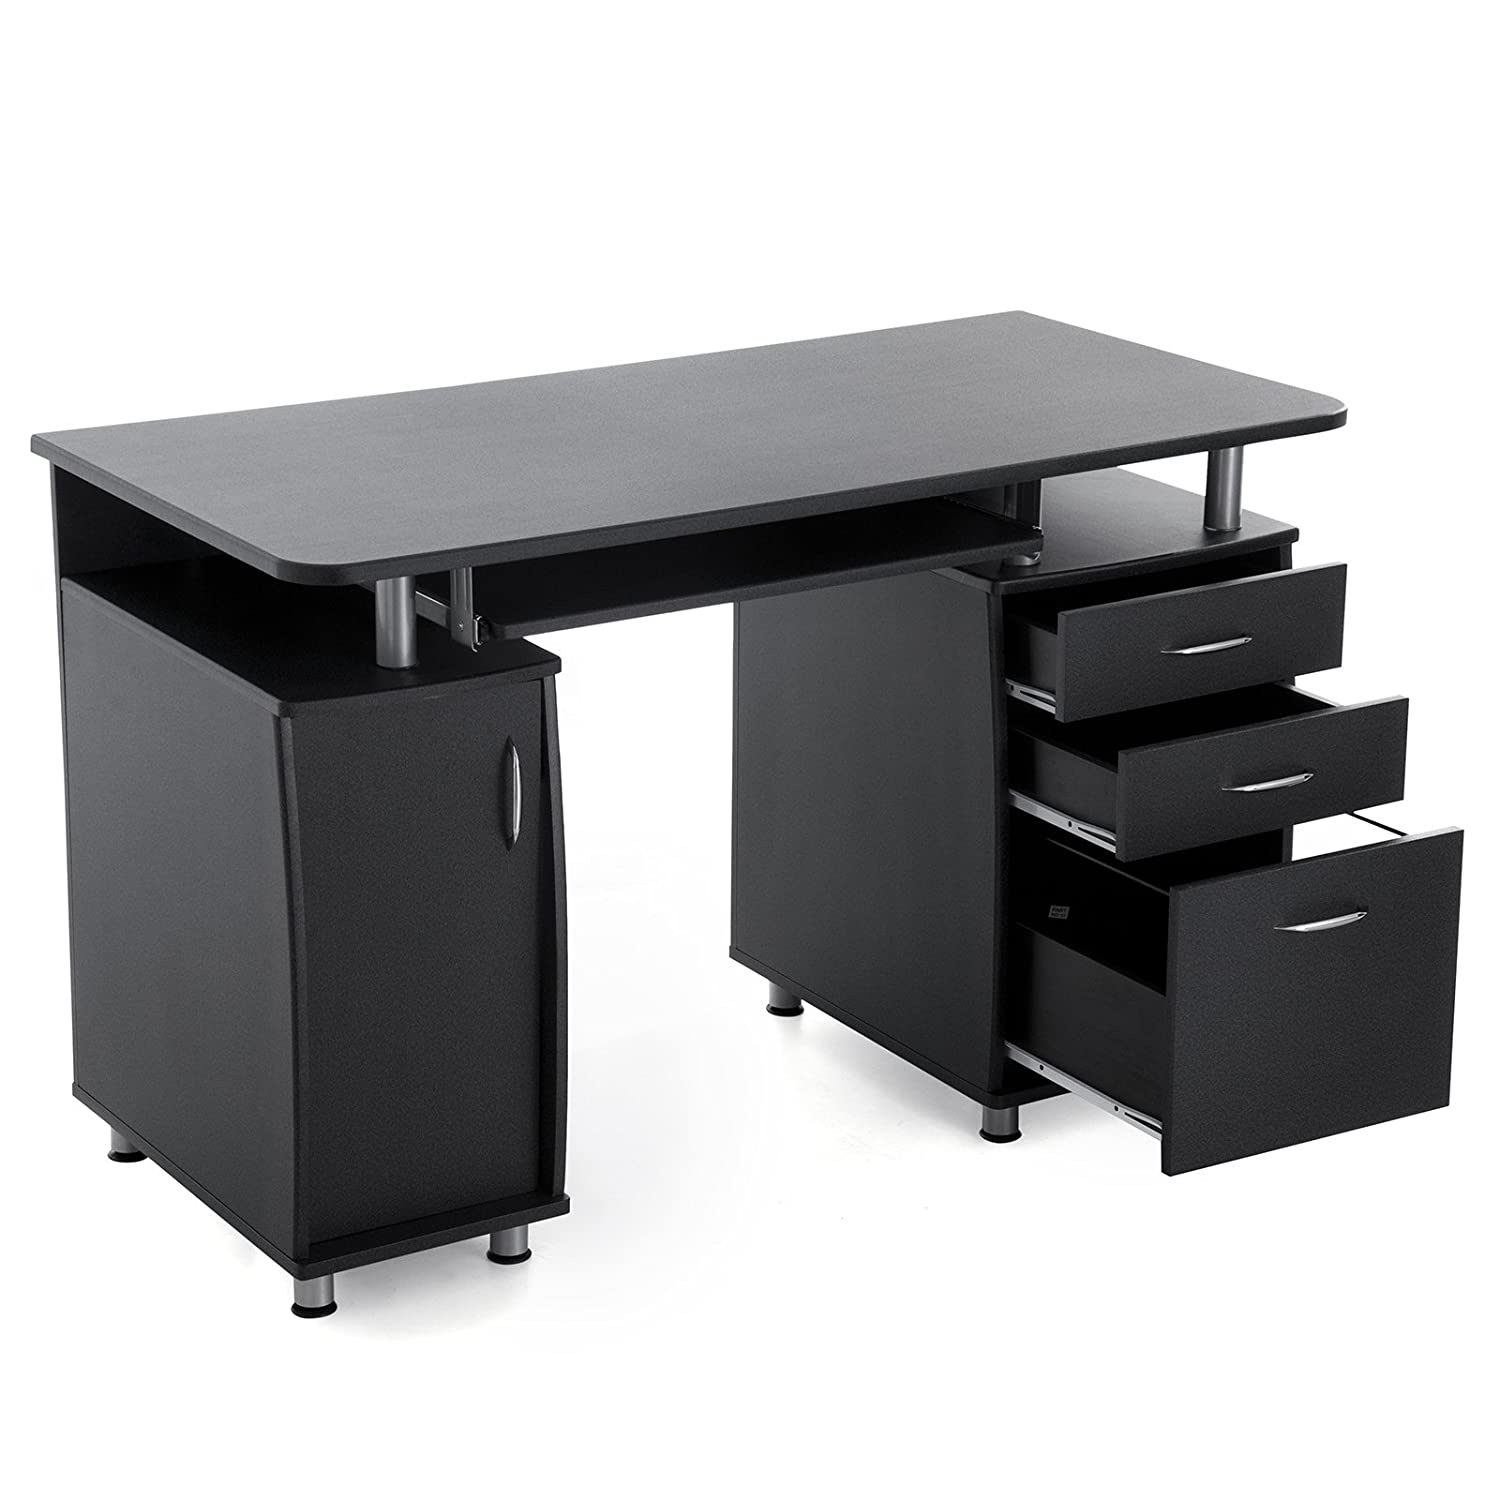 amazone bureau bureau amazon buramz001 rehausse bureau bureau pour ordinateur bureau enfant. Black Bedroom Furniture Sets. Home Design Ideas